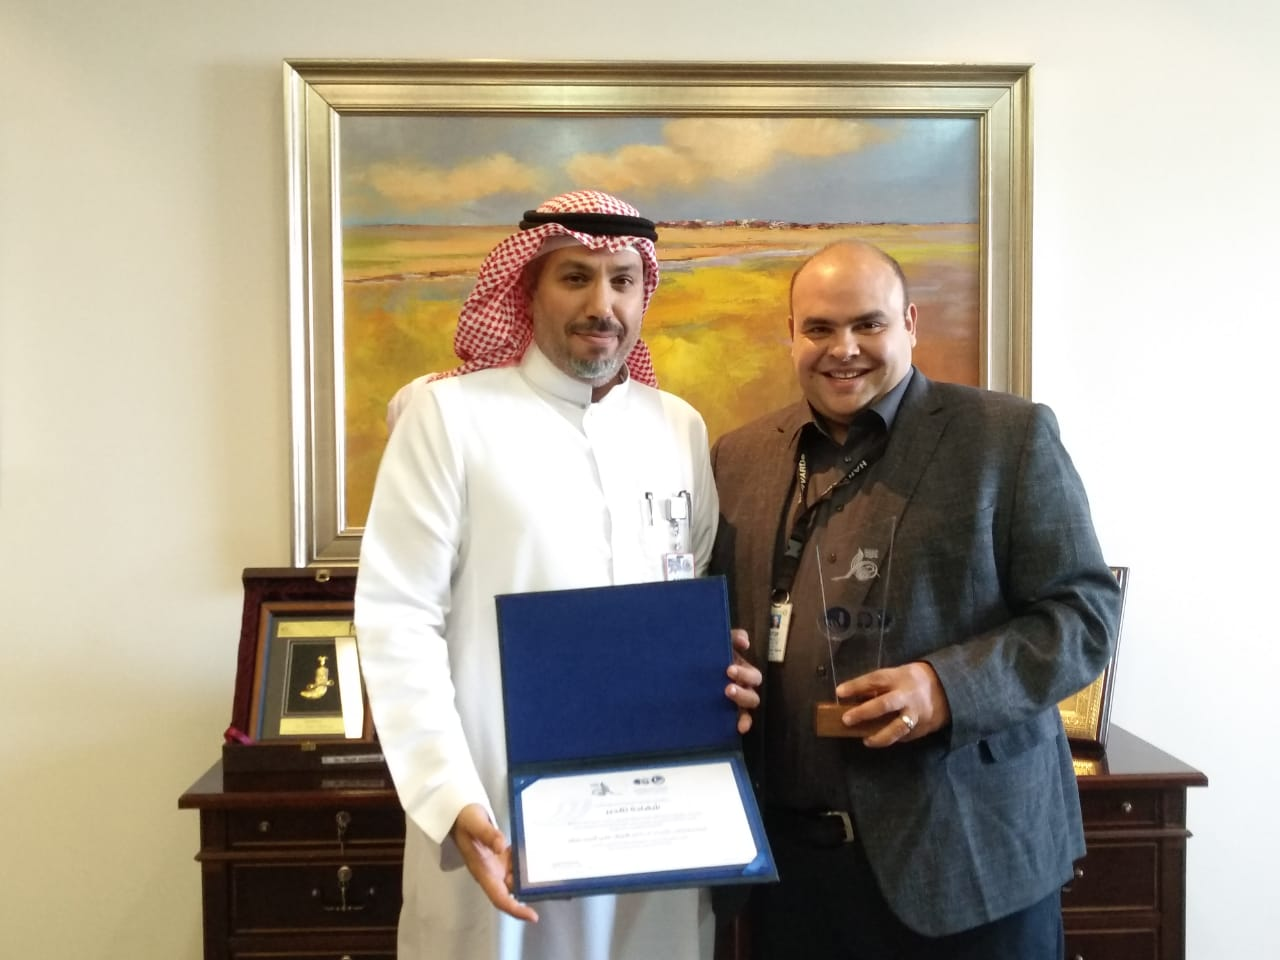 PROFESSOR SHERIF ALY SAKR AWARDED BY THE ABDUL HAMEED SHOMAN FOUNDATION AS 2019 BEST ARAB SCHOLAR IN THE TECHNOLOGICAL FIELD